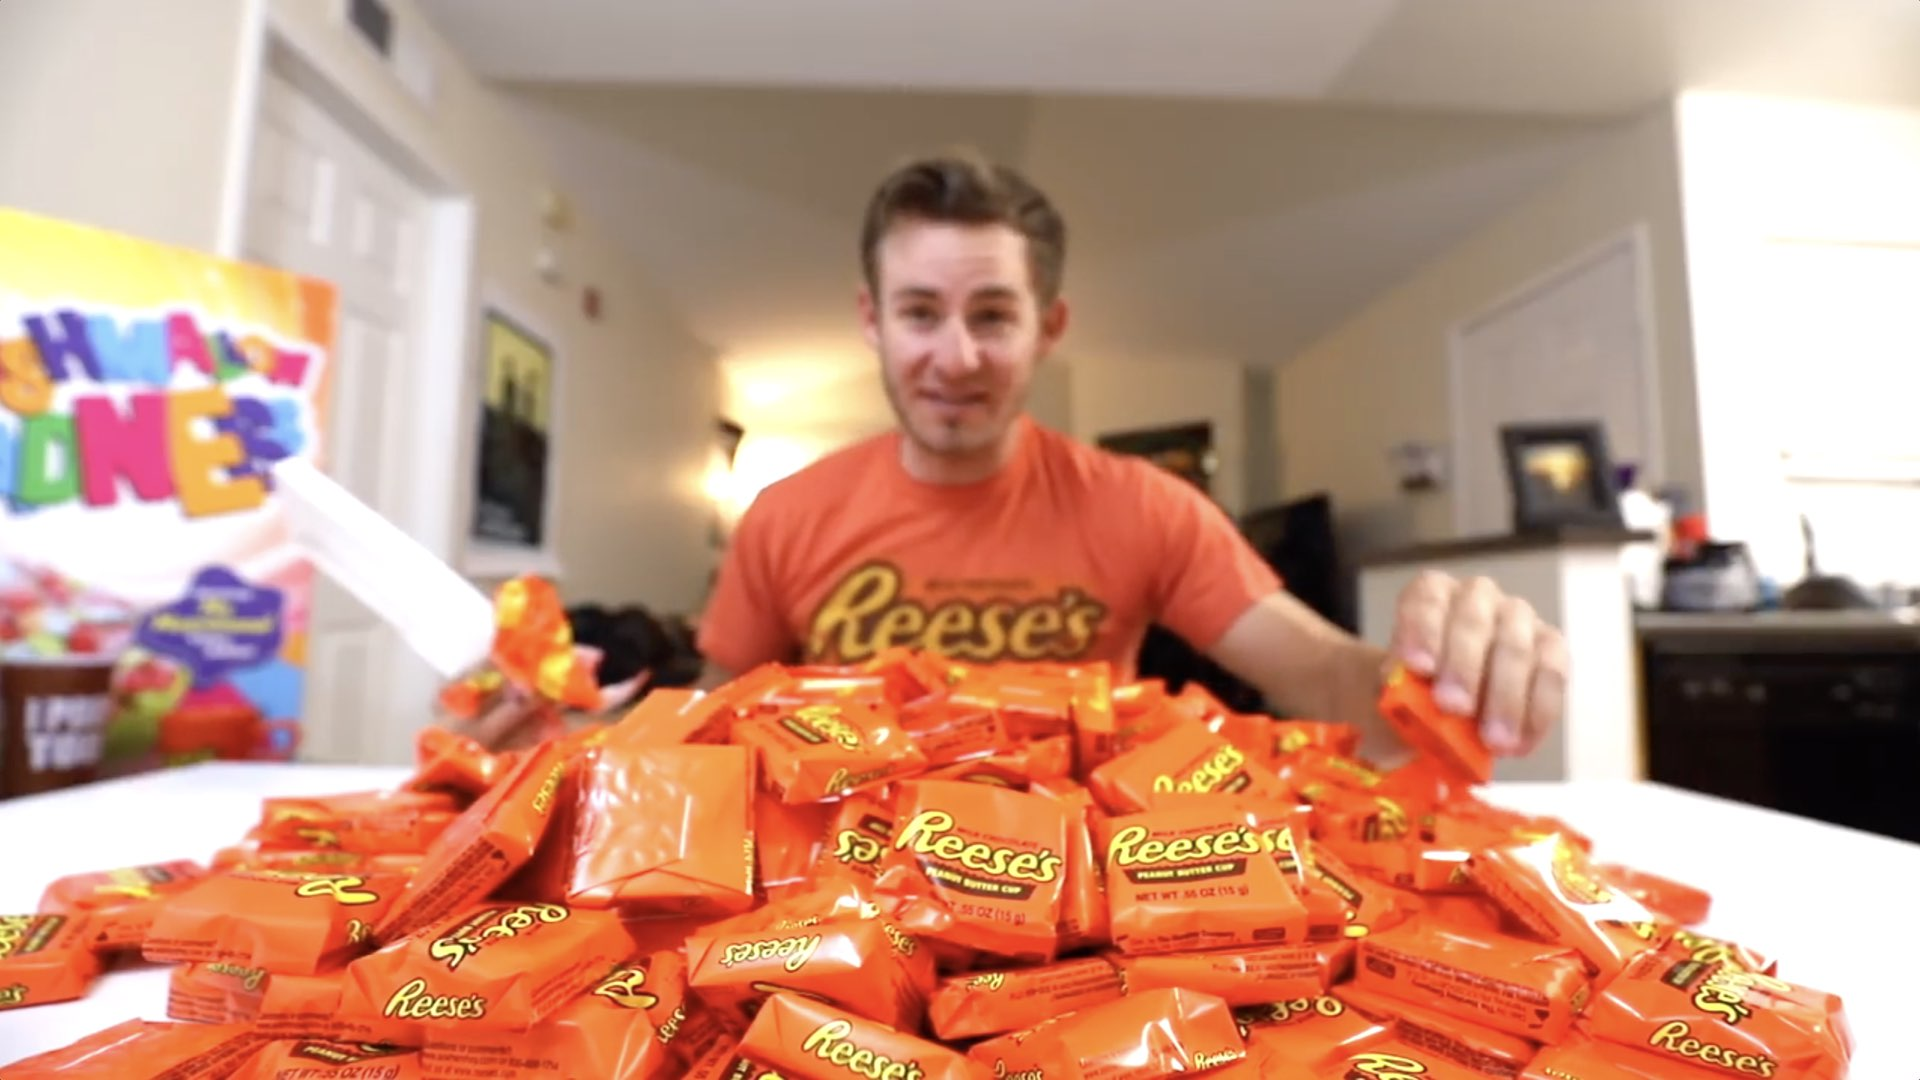 Reeses Peanut Butter Cups [Day 1] - 03 - Spark Image Prompt and Estimate